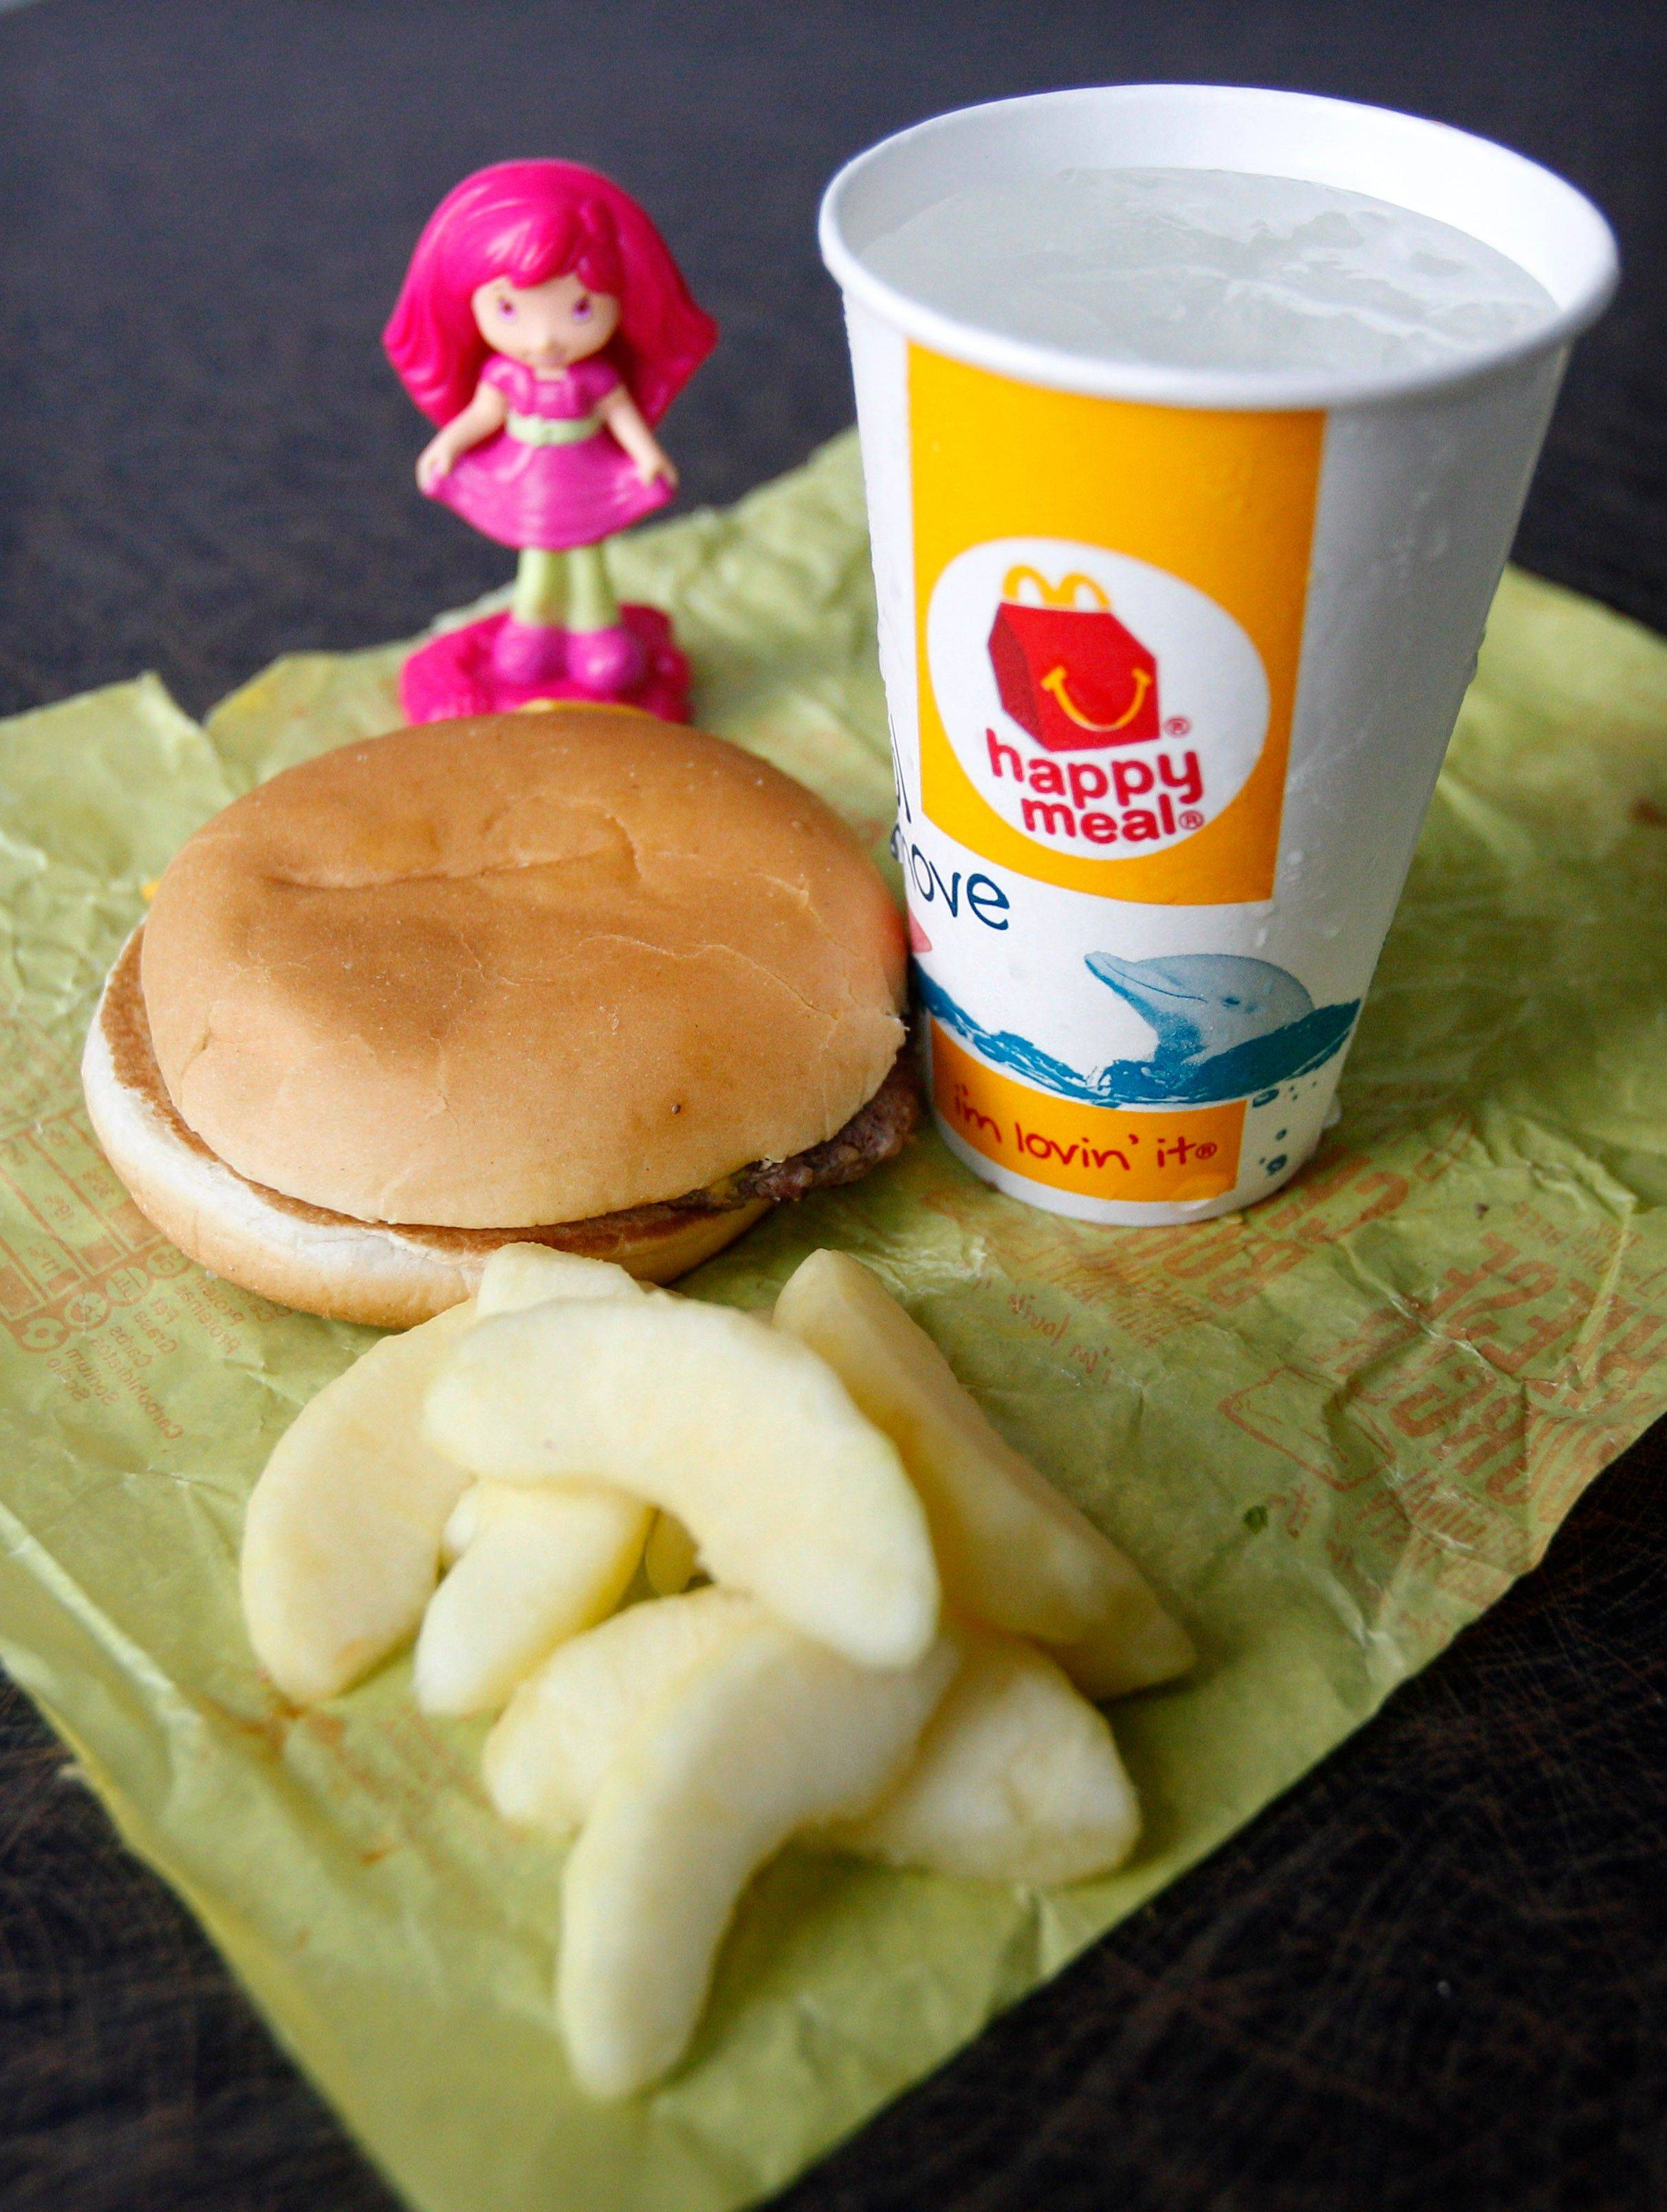 Now, apple slices are standard in McDonald's Happy Meals.